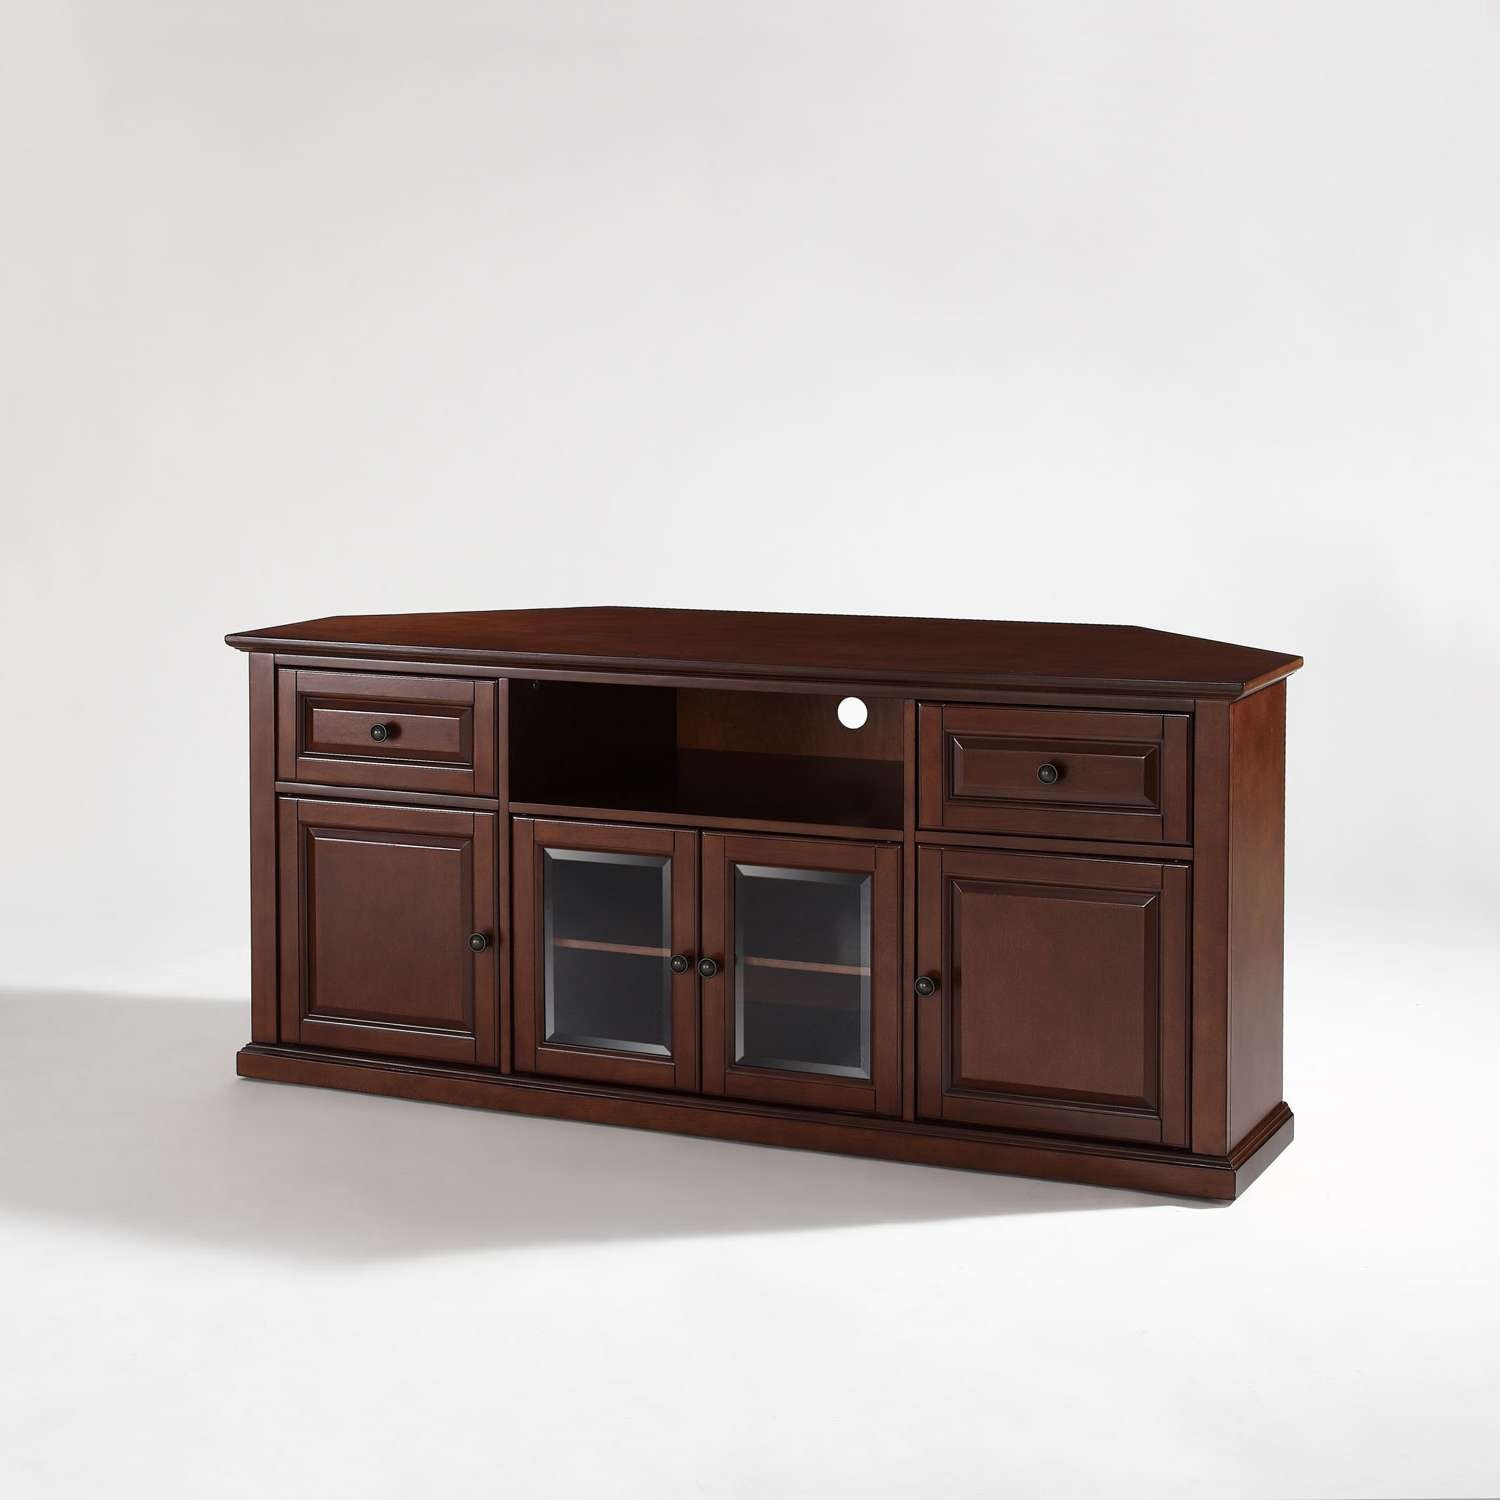 Tv Stands & Cabinets On Sale | Bellacor For 24 Inch Wide Tv Stands (View 15 of 15)